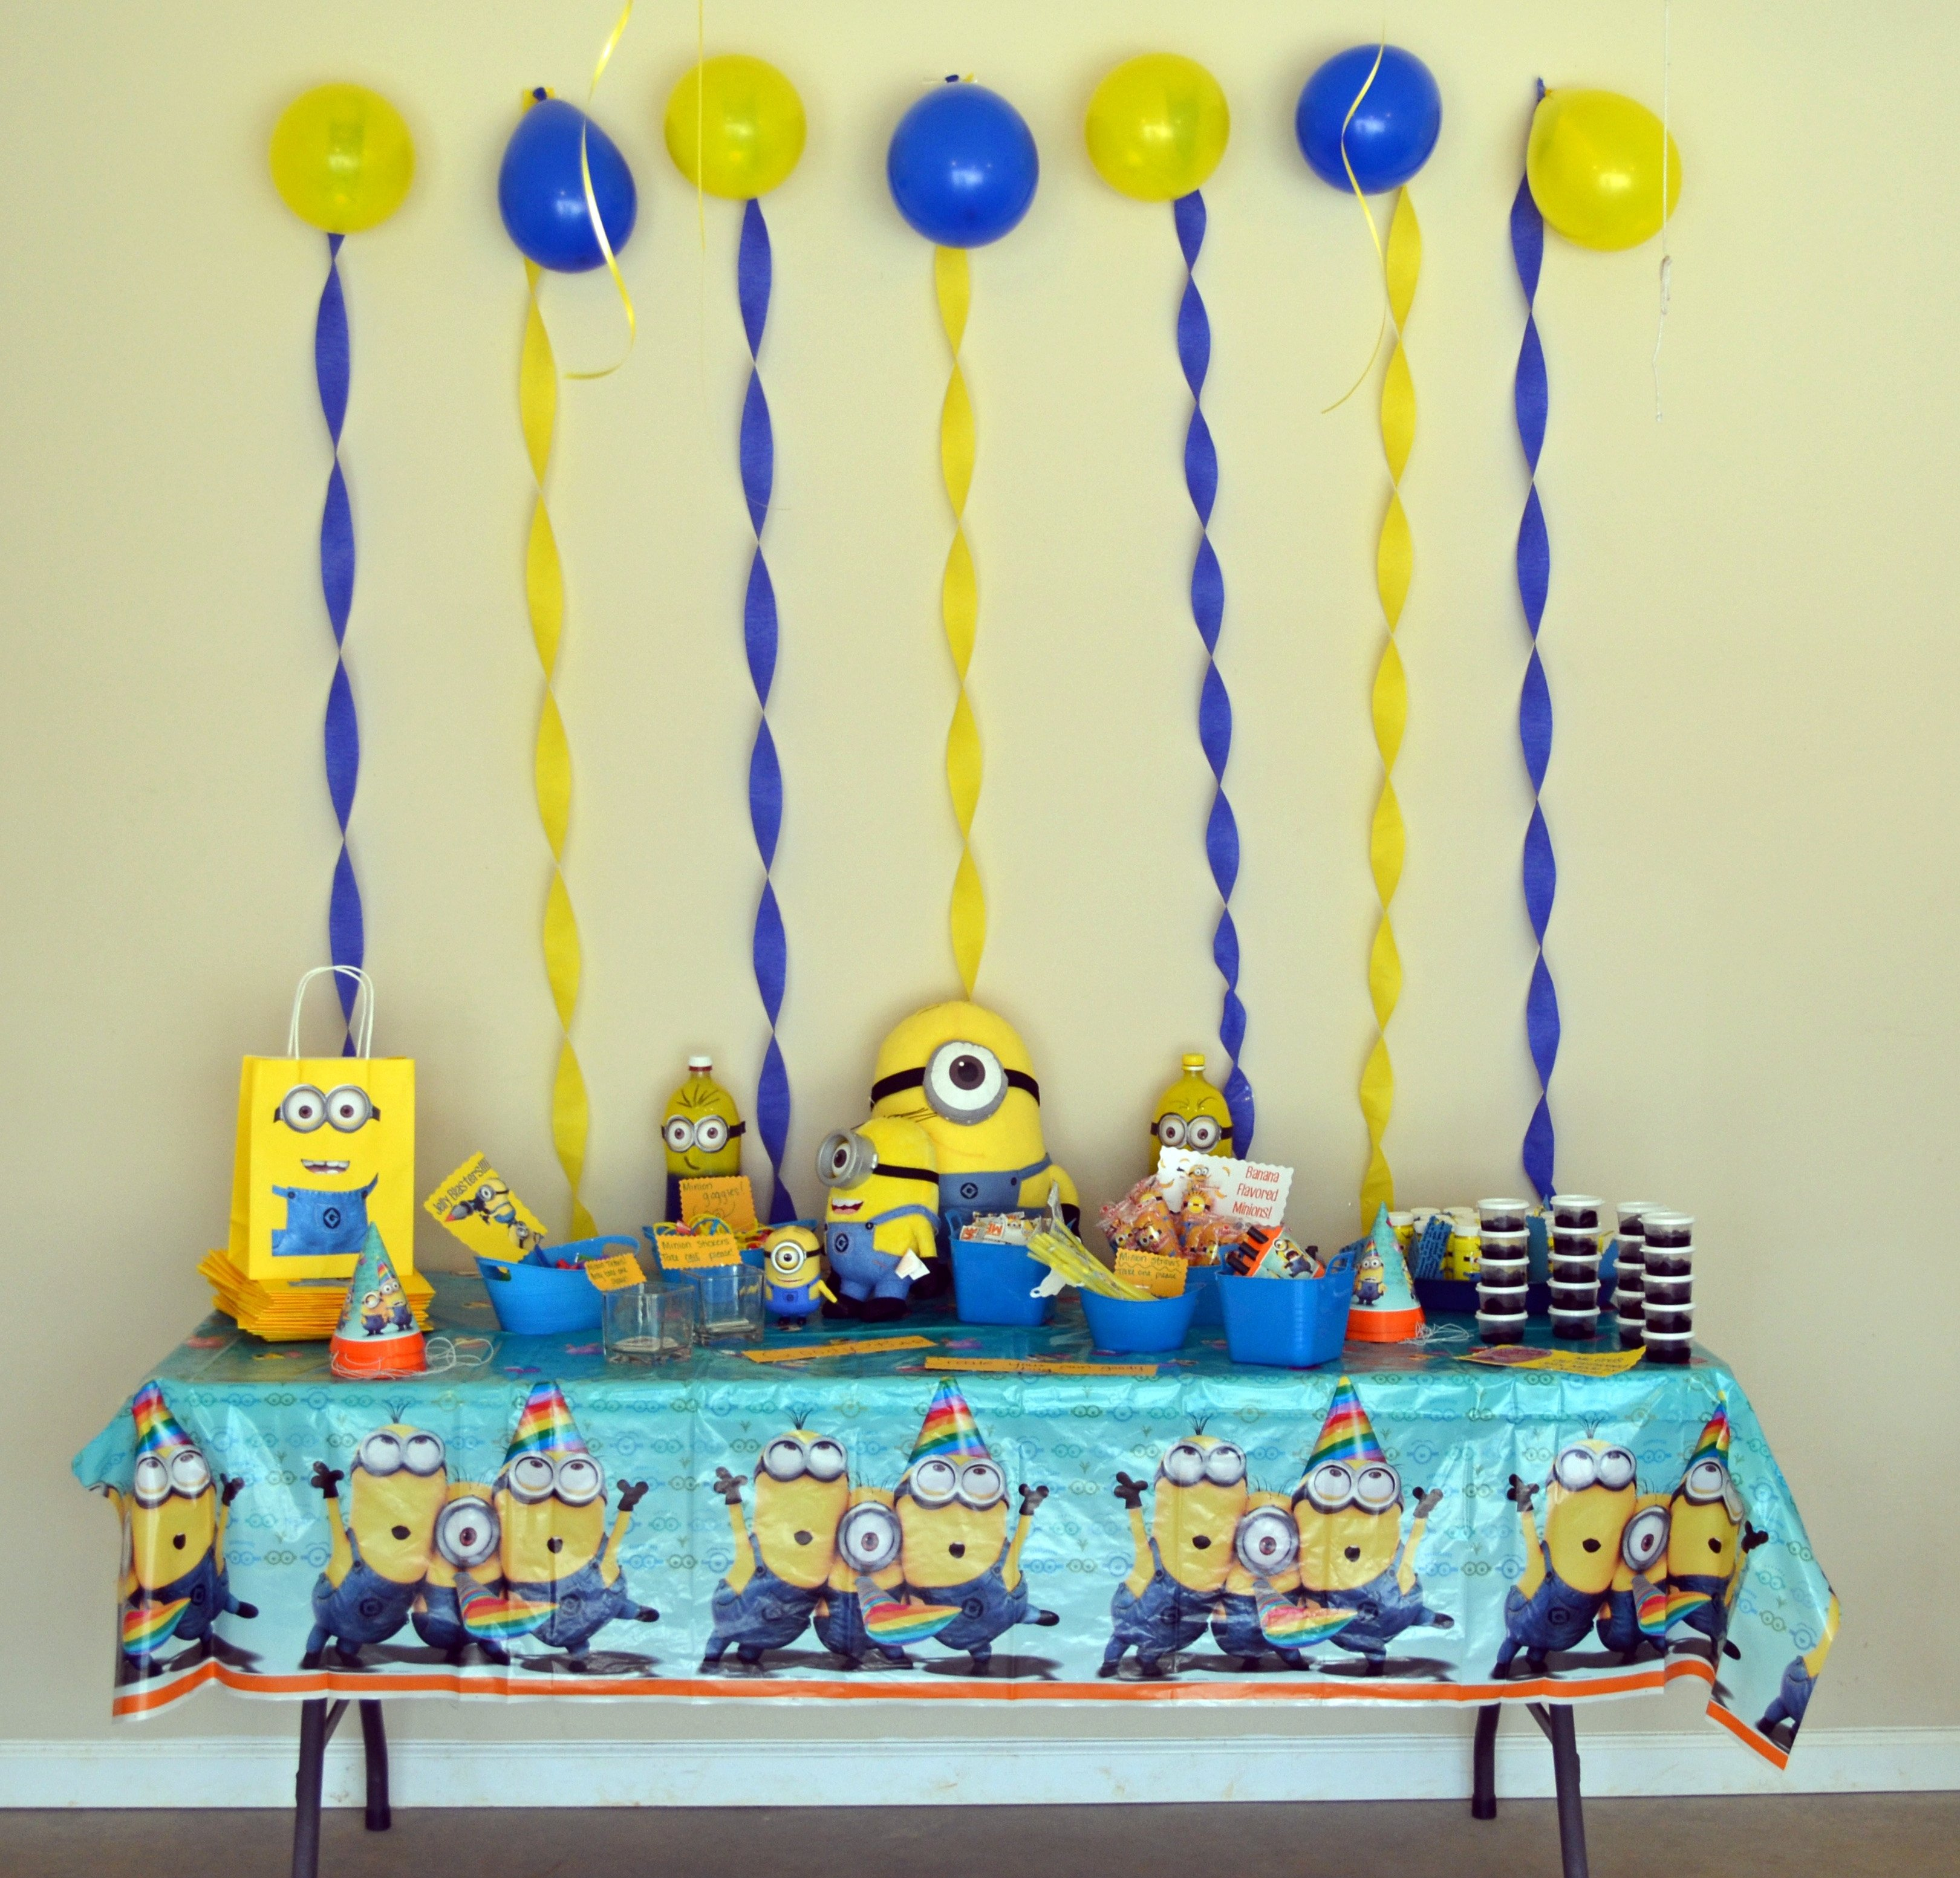 10 Nice Despicable Me 2 Birthday Party Ideas despicable me minion birthday party ideas instead of pre making 1 2020